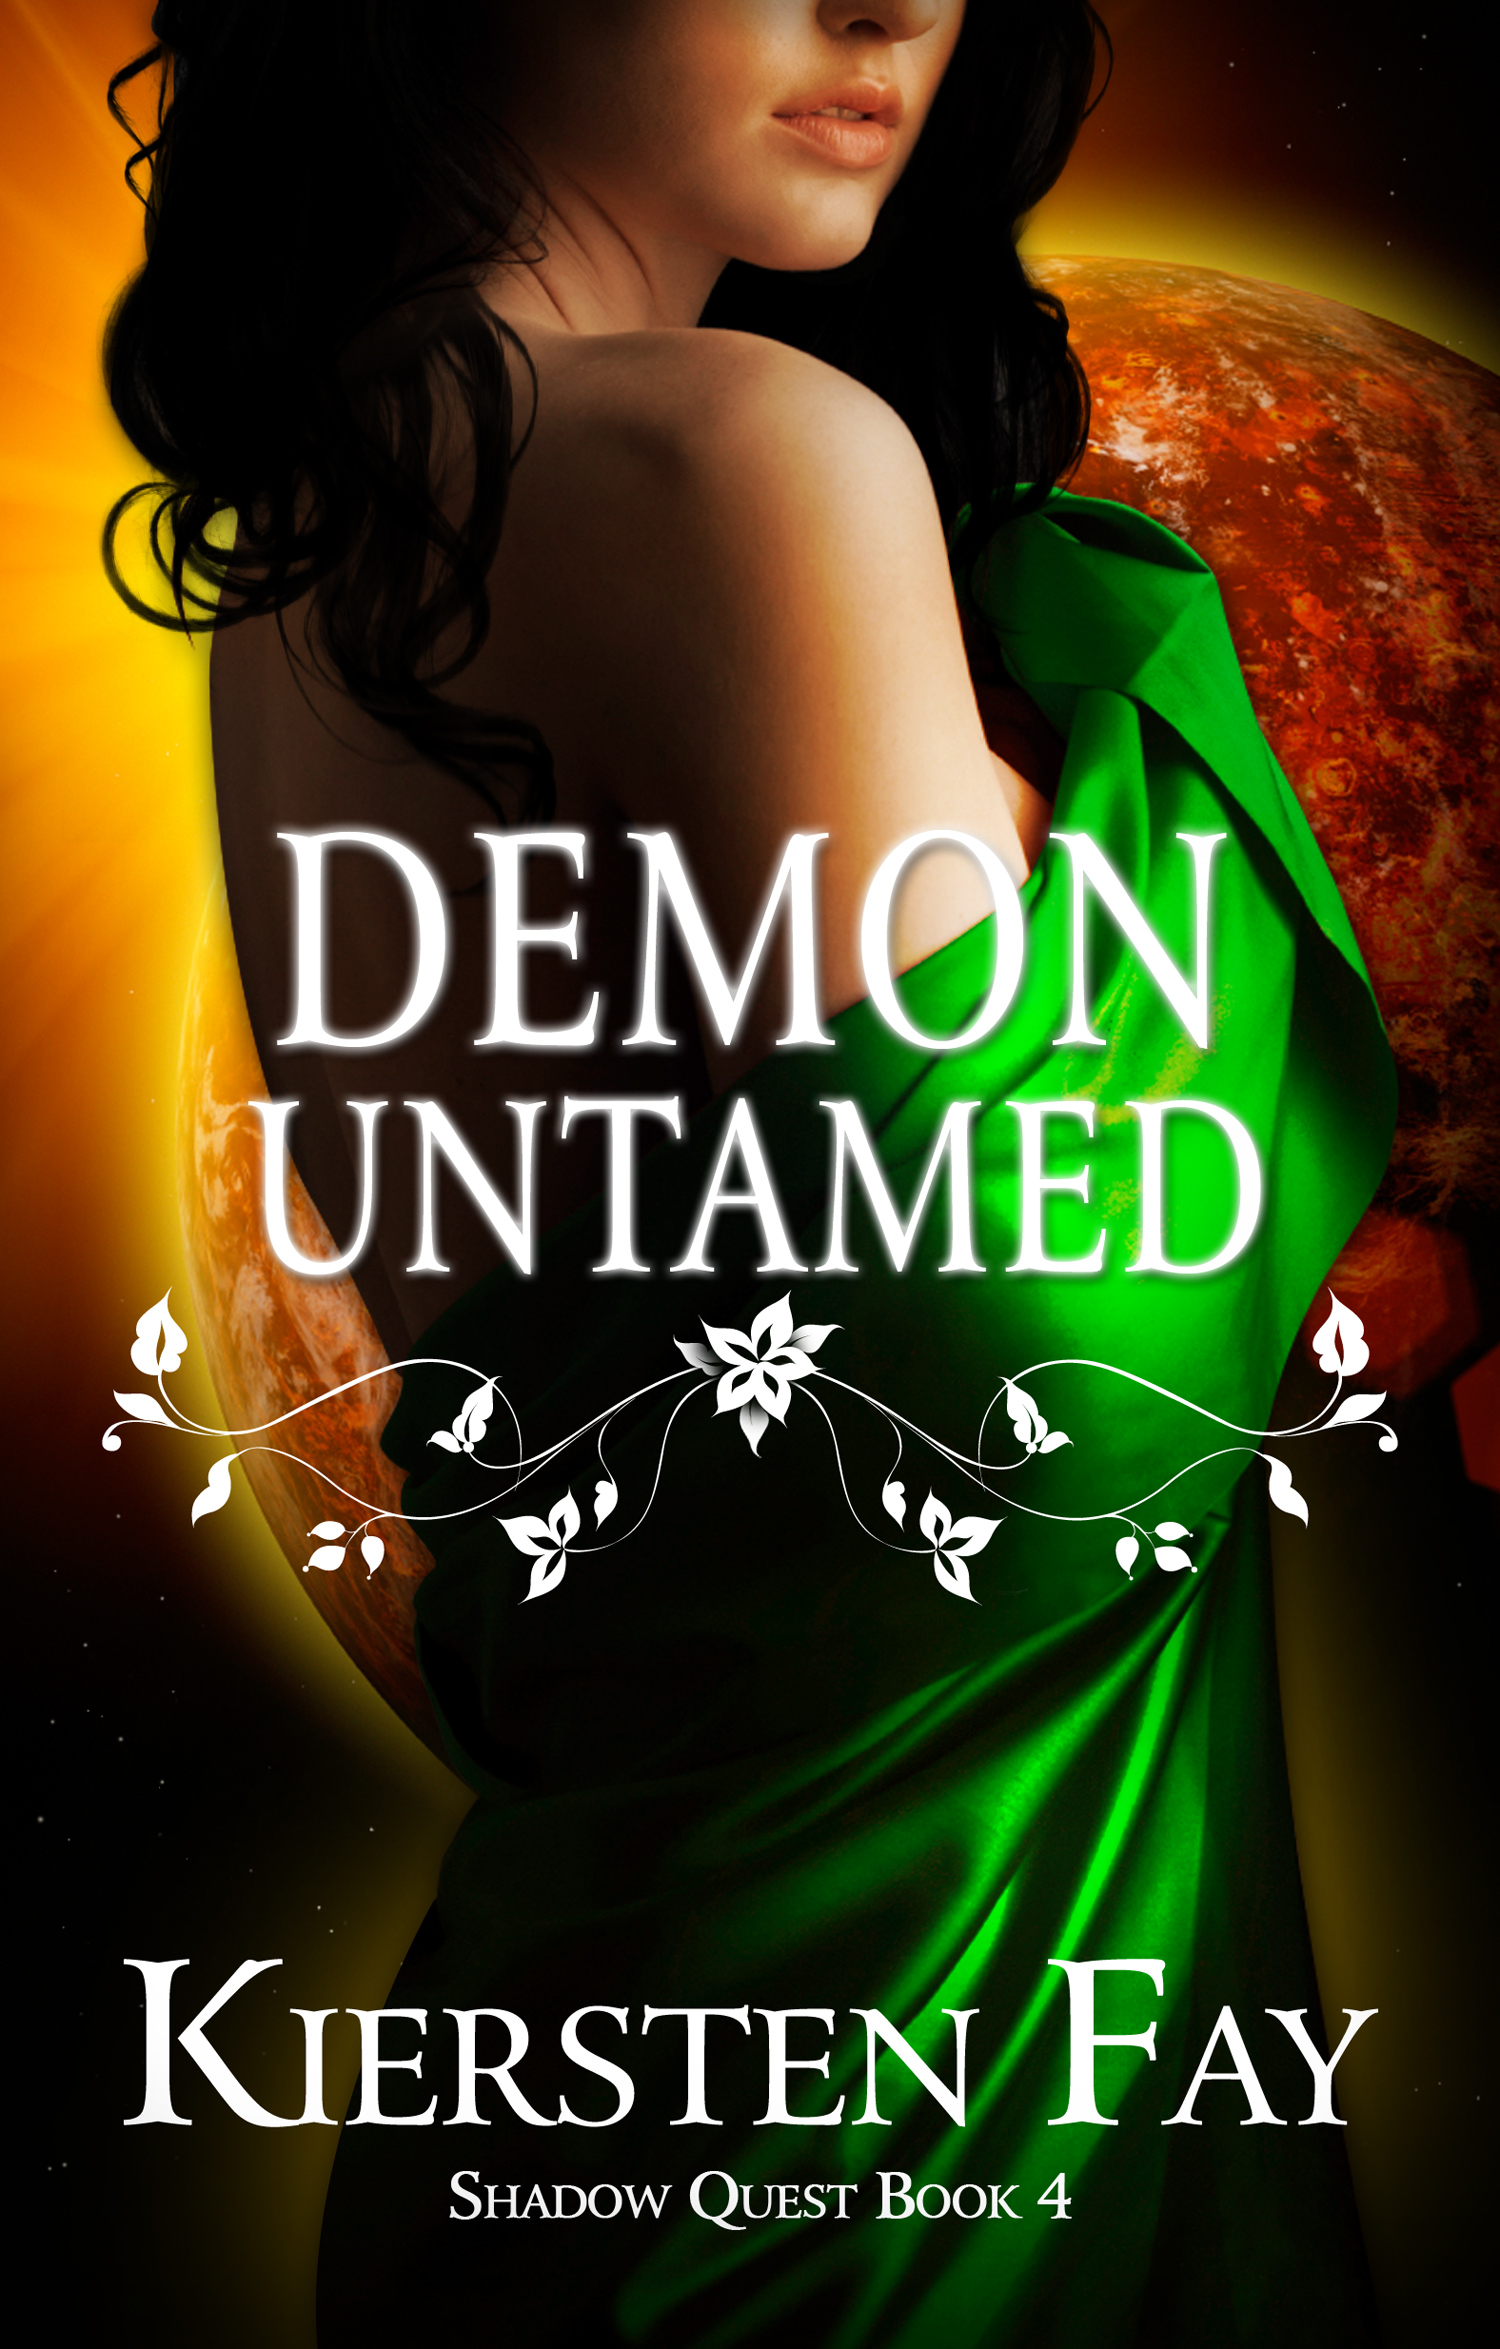 Demon Untamed